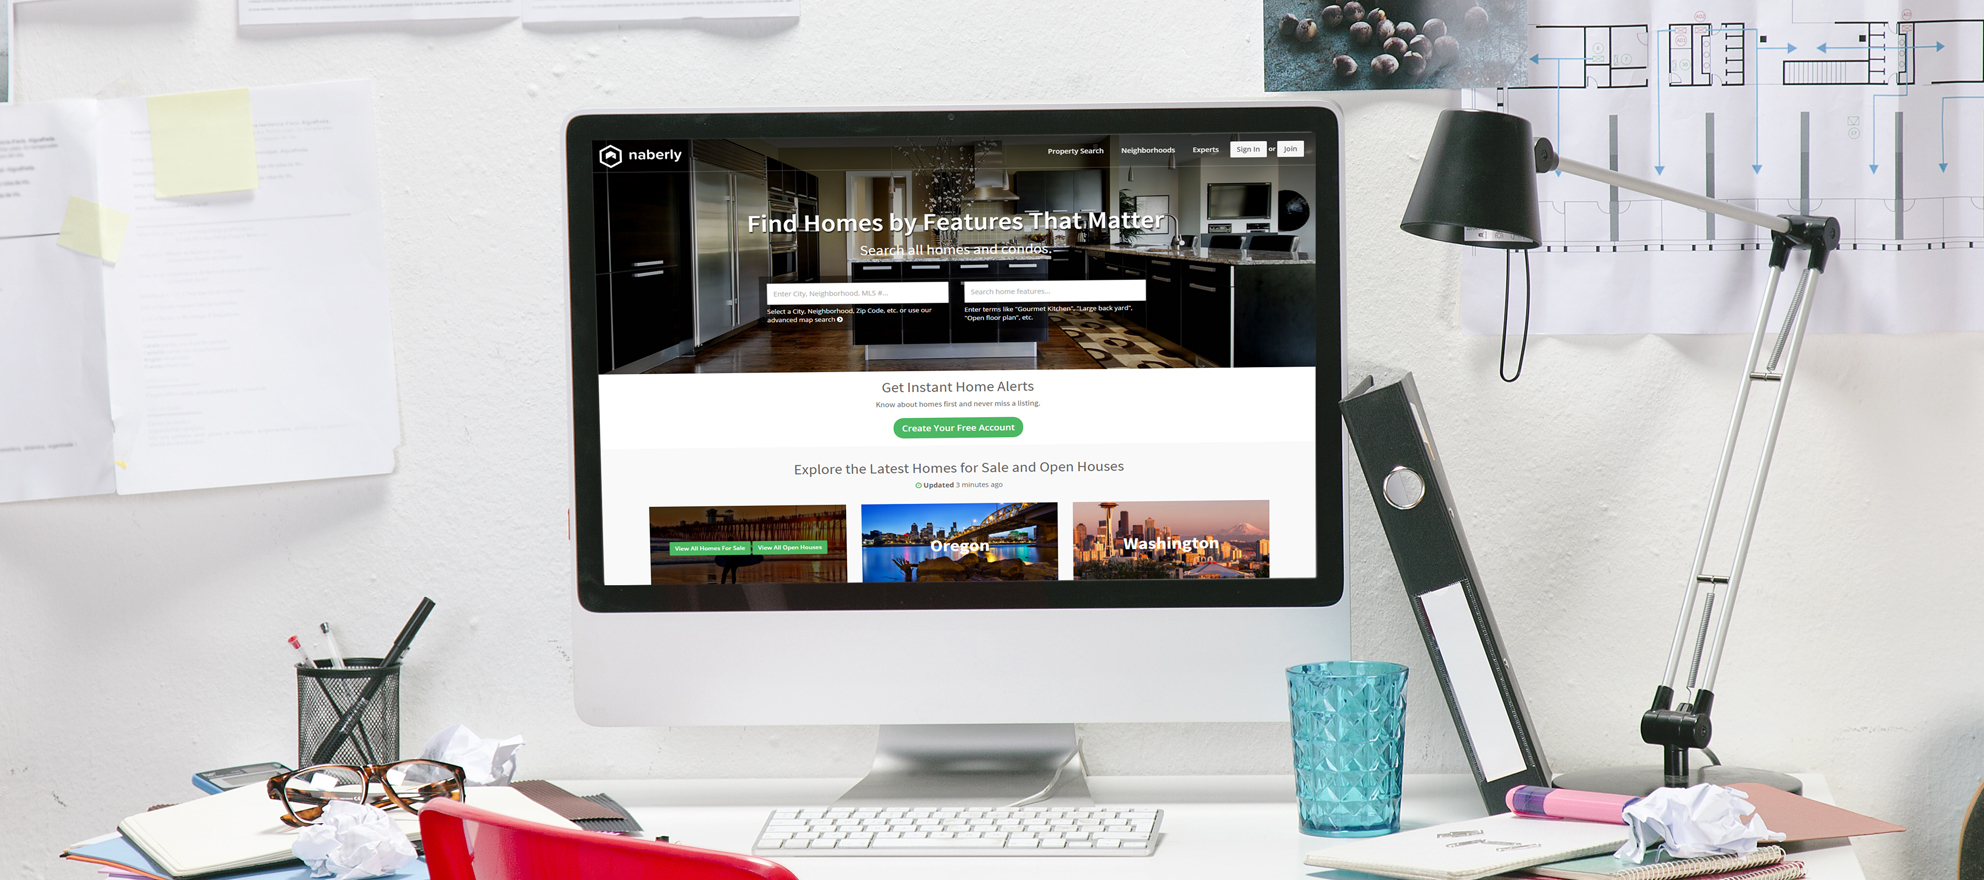 New hyperlocal home search portal gears up for launch